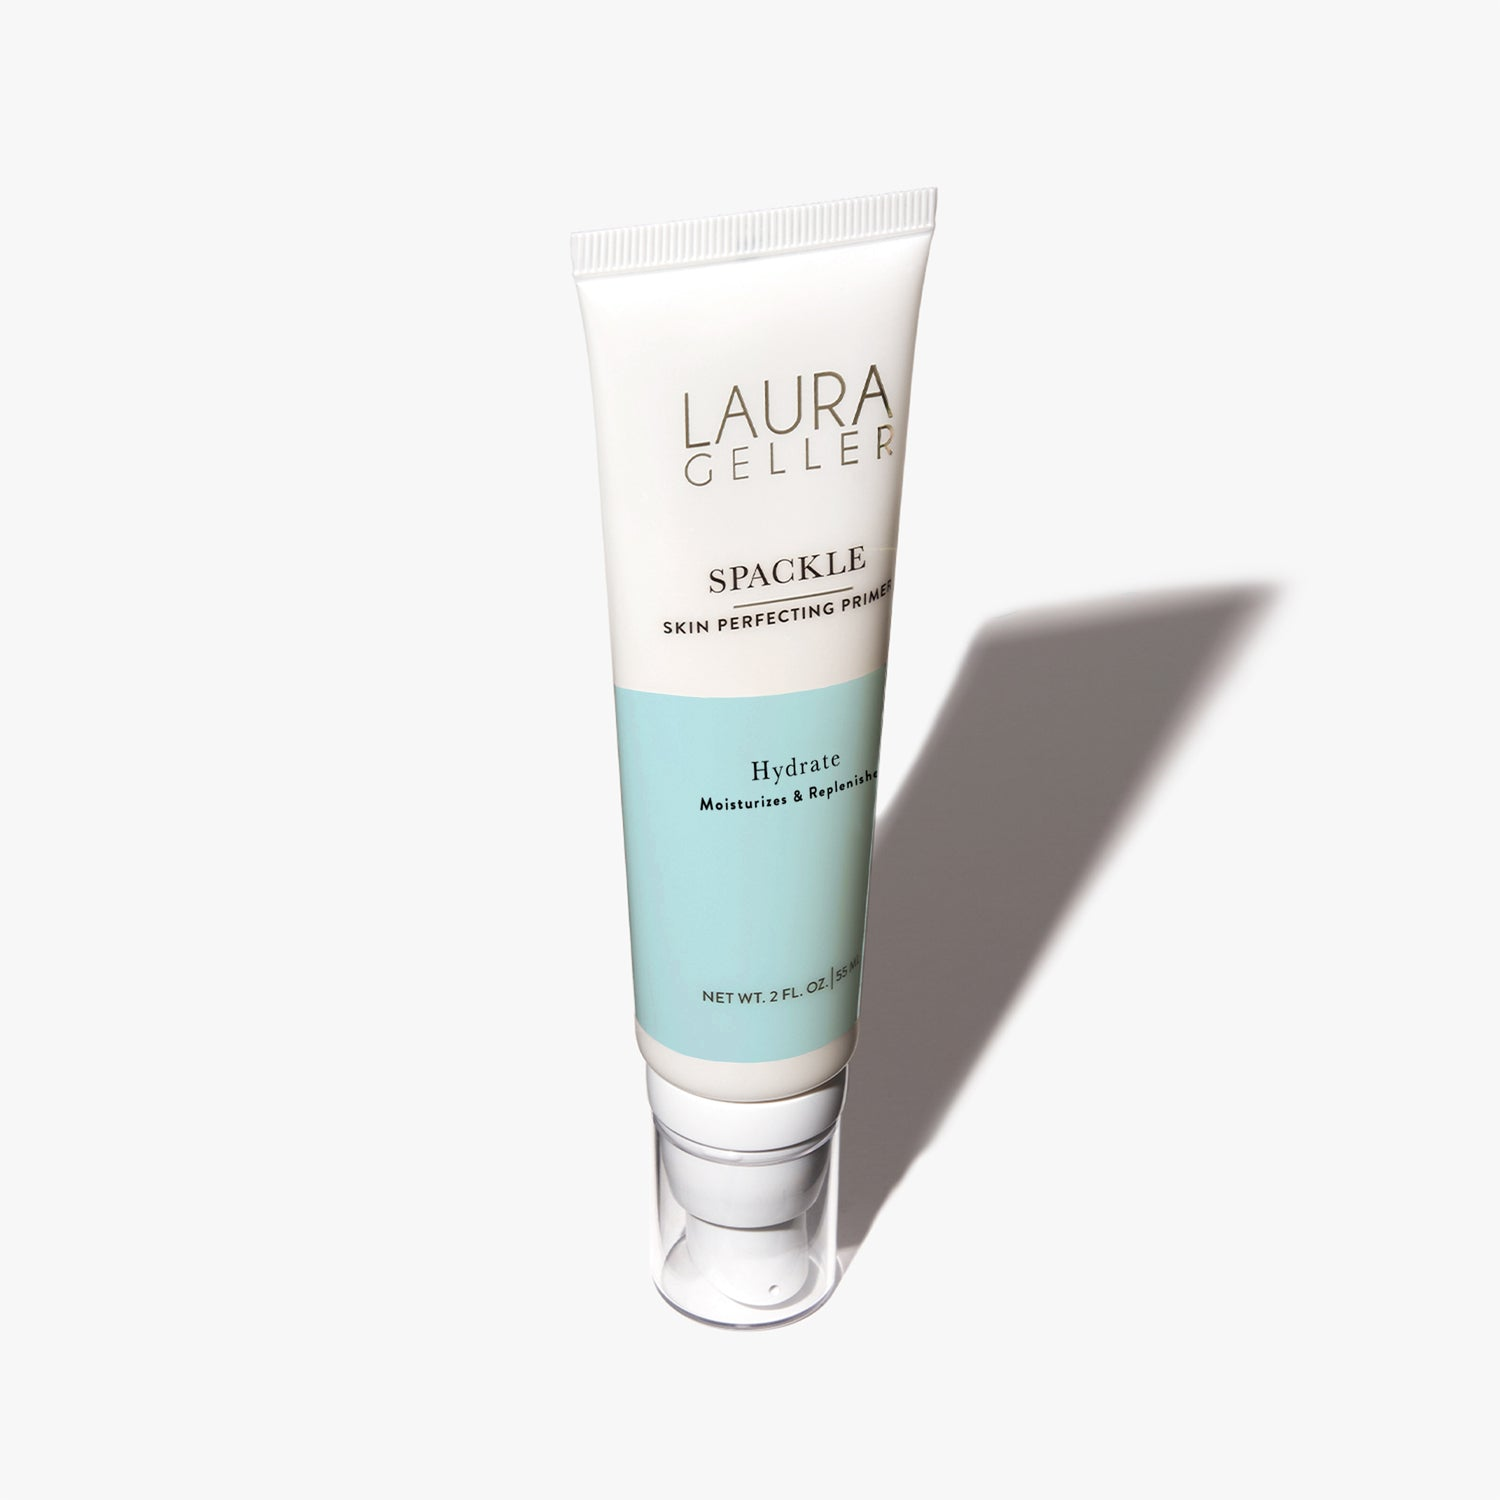 Spackle Perfecting Primer: Hydrate